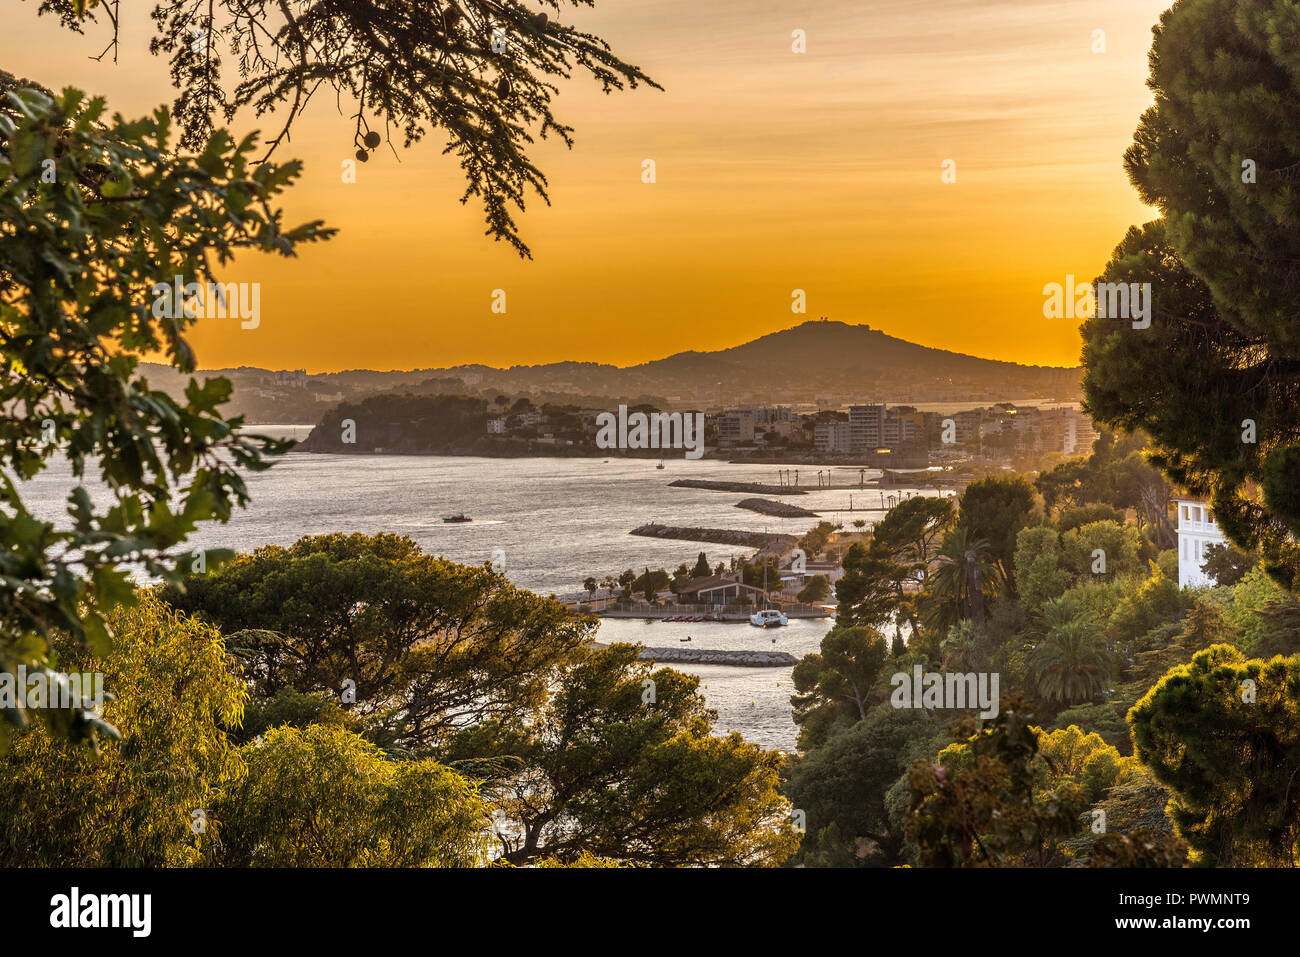 France, Provence-Alpes-Cote-d'Azur, Var, Toulon, roadstead, overall view - Stock Image